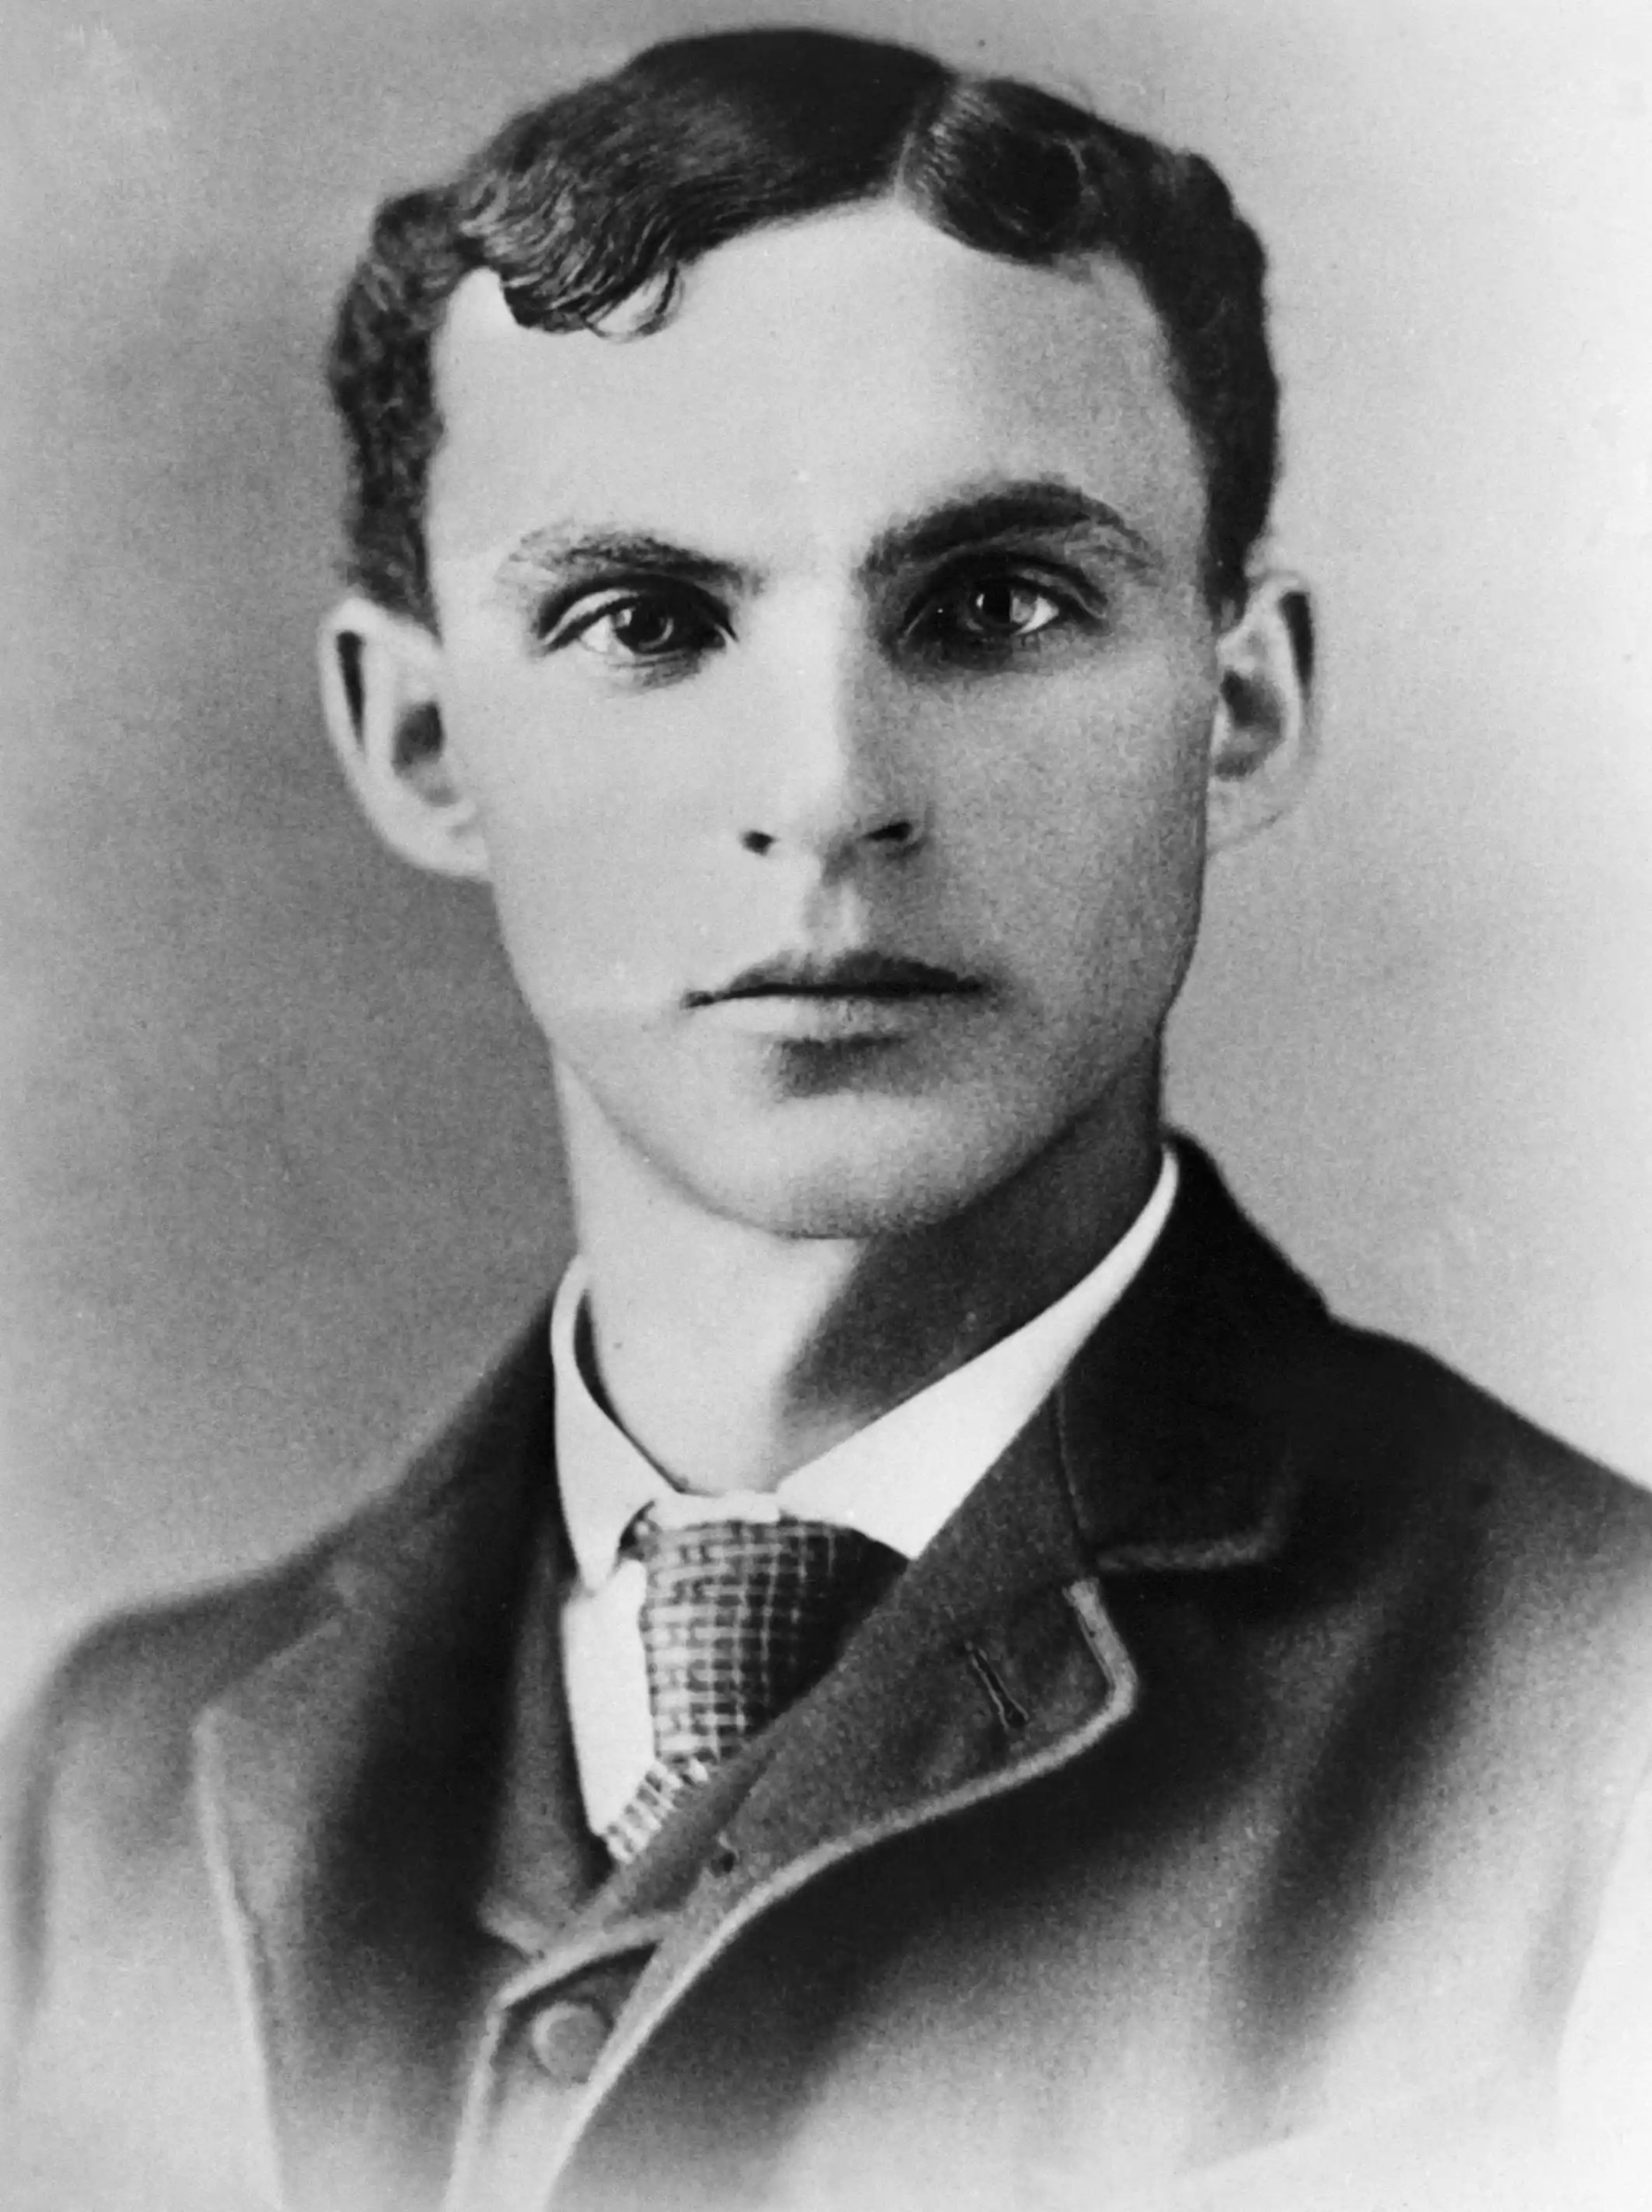 Henry Ford at twenty-five-years old in 1888.